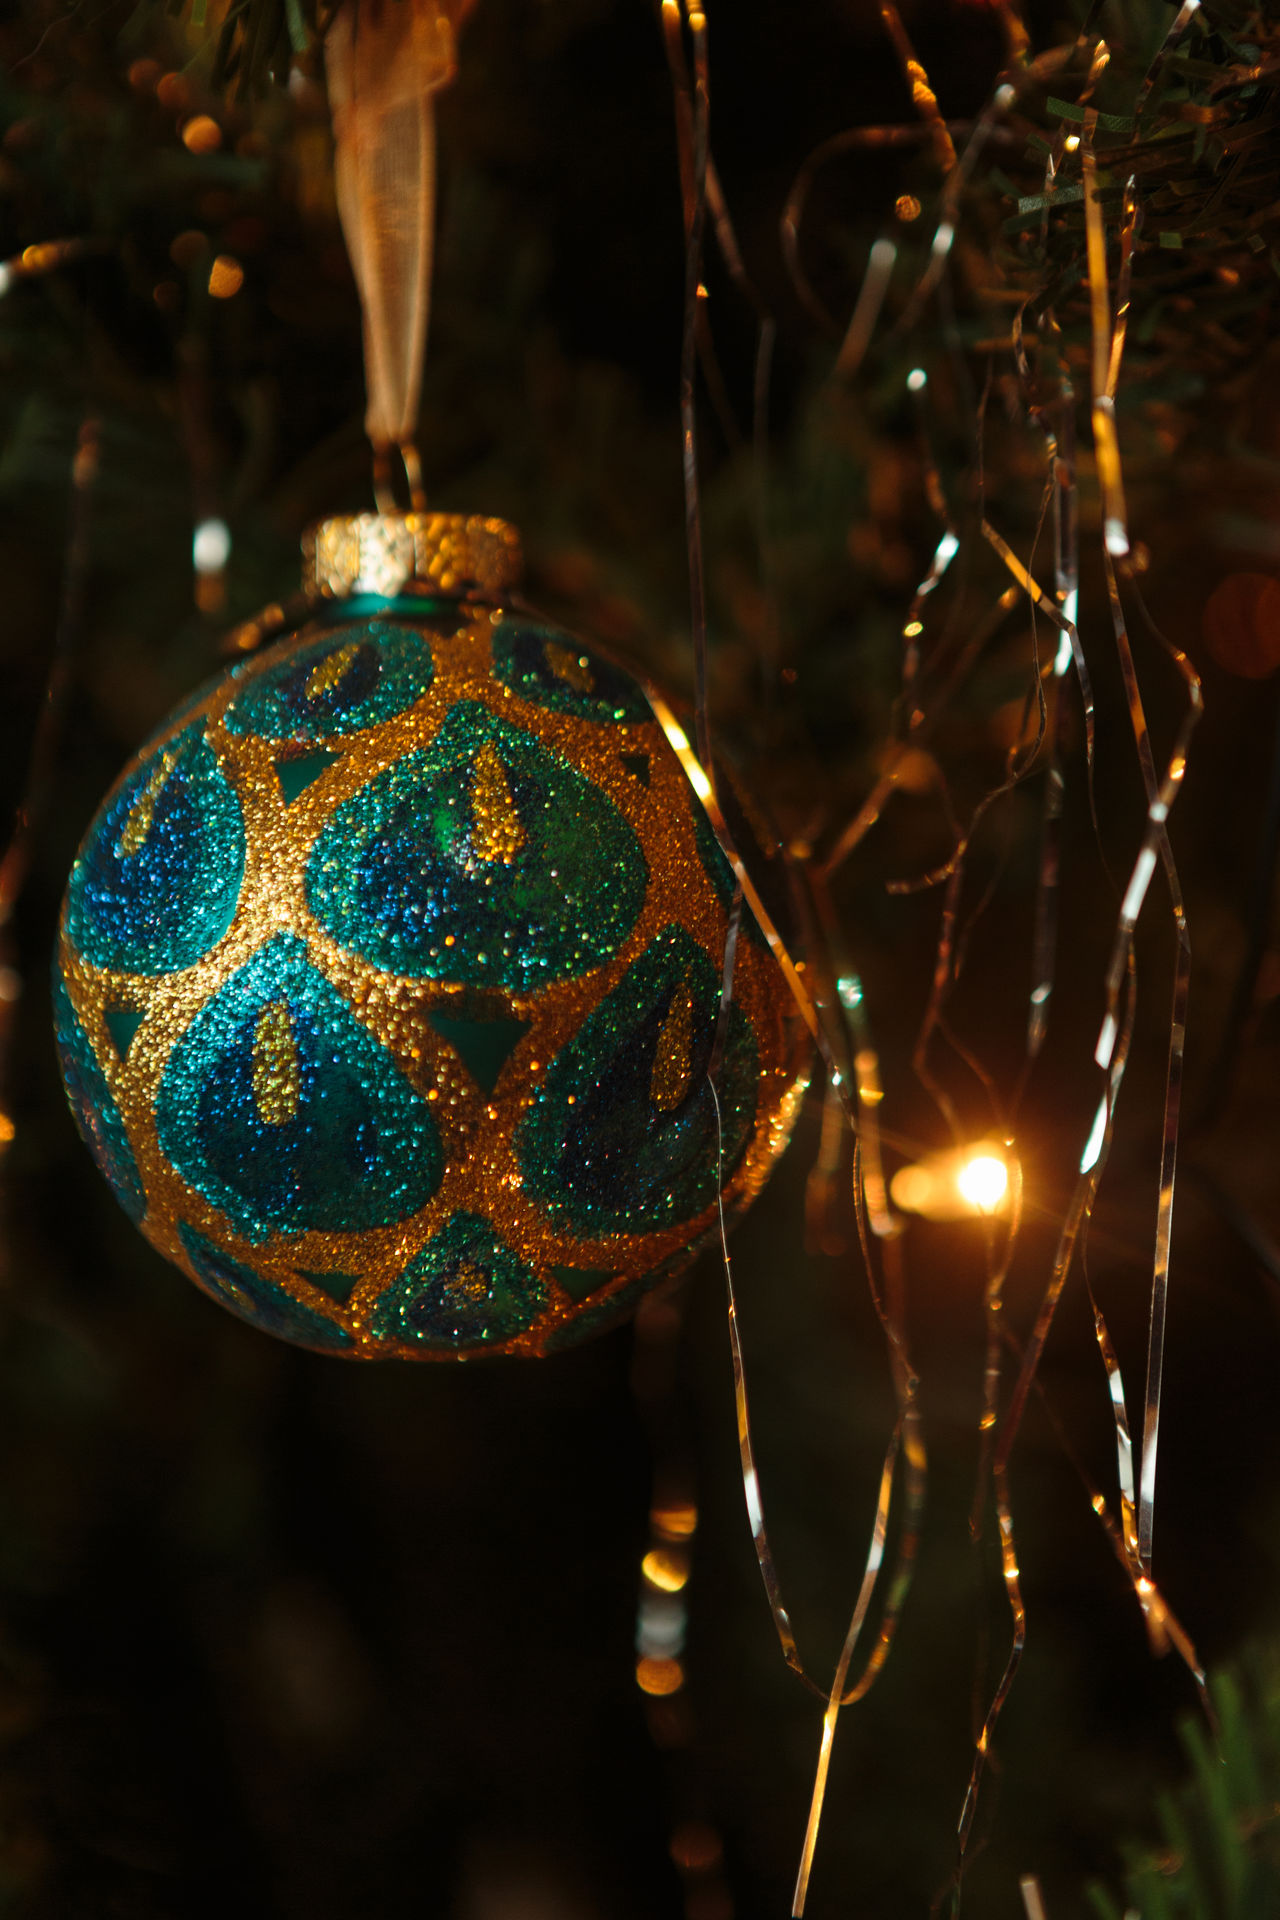 Christmas Bauble Christmas Decorations Christmas Decorations Christmas Lights Christmas Tree Christmastime Festive Greetings Christmastree Christmaslights Chriatmas Christmas Time Photographer For Hire Festiveseason Feative Canon 24-70 Canon5Dmk3 Christmas Cards Festive Mood Festive Season Photographerforhire Focus On Foreground MerryChristmas Celebration Glowing Merry Christmas